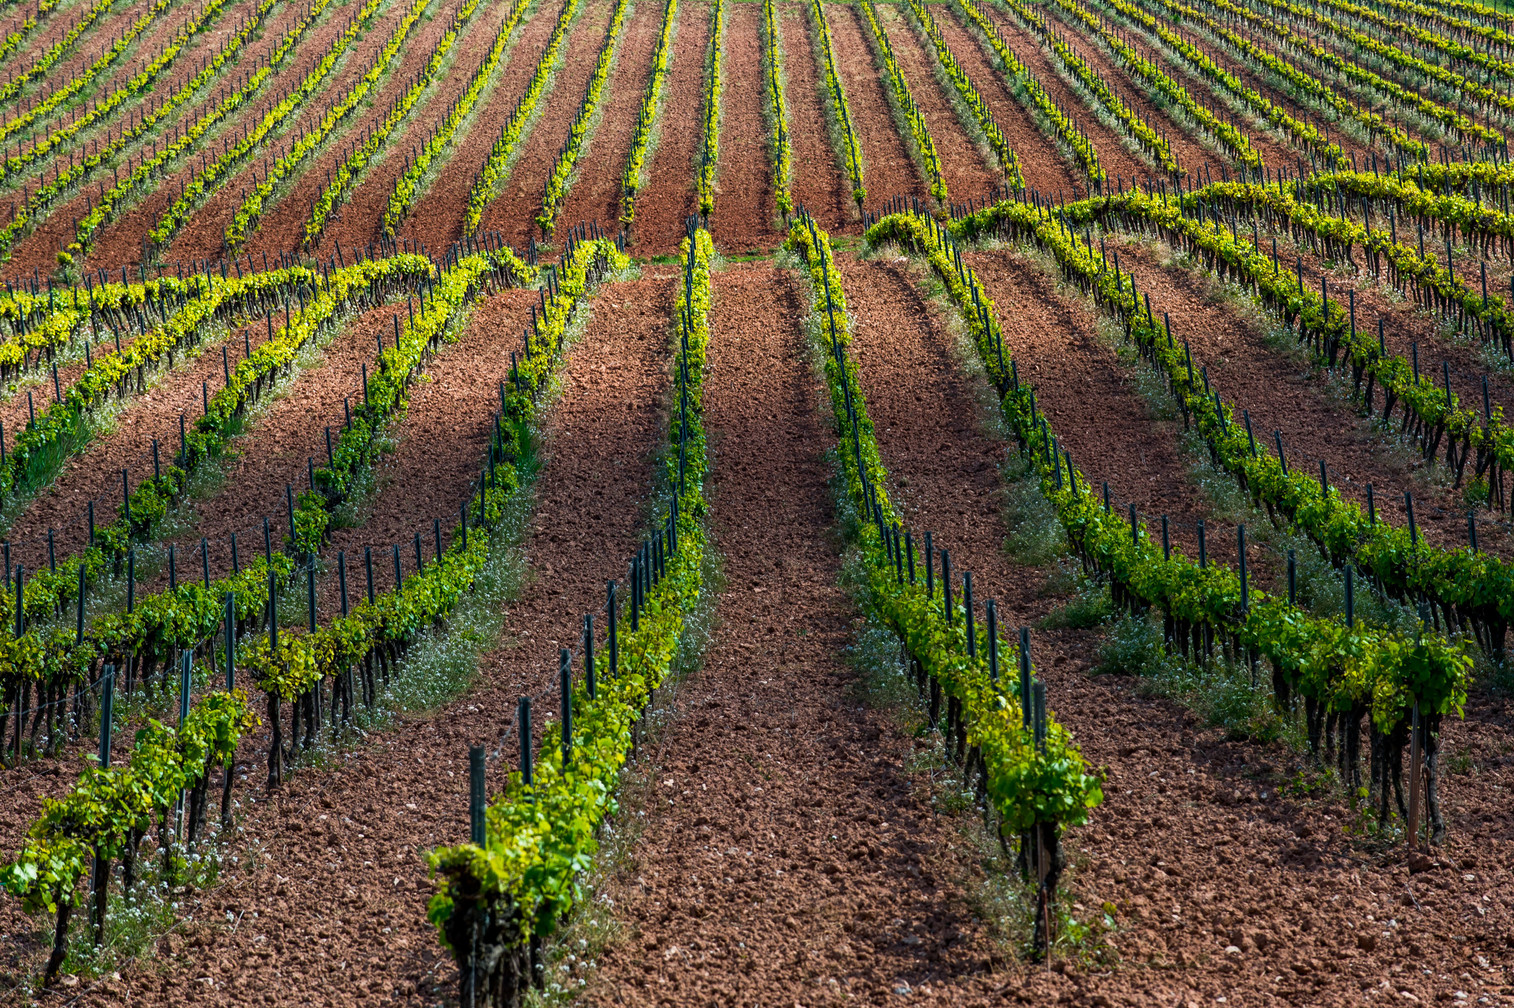 Vineyards at Conca de Barberà (Spain)